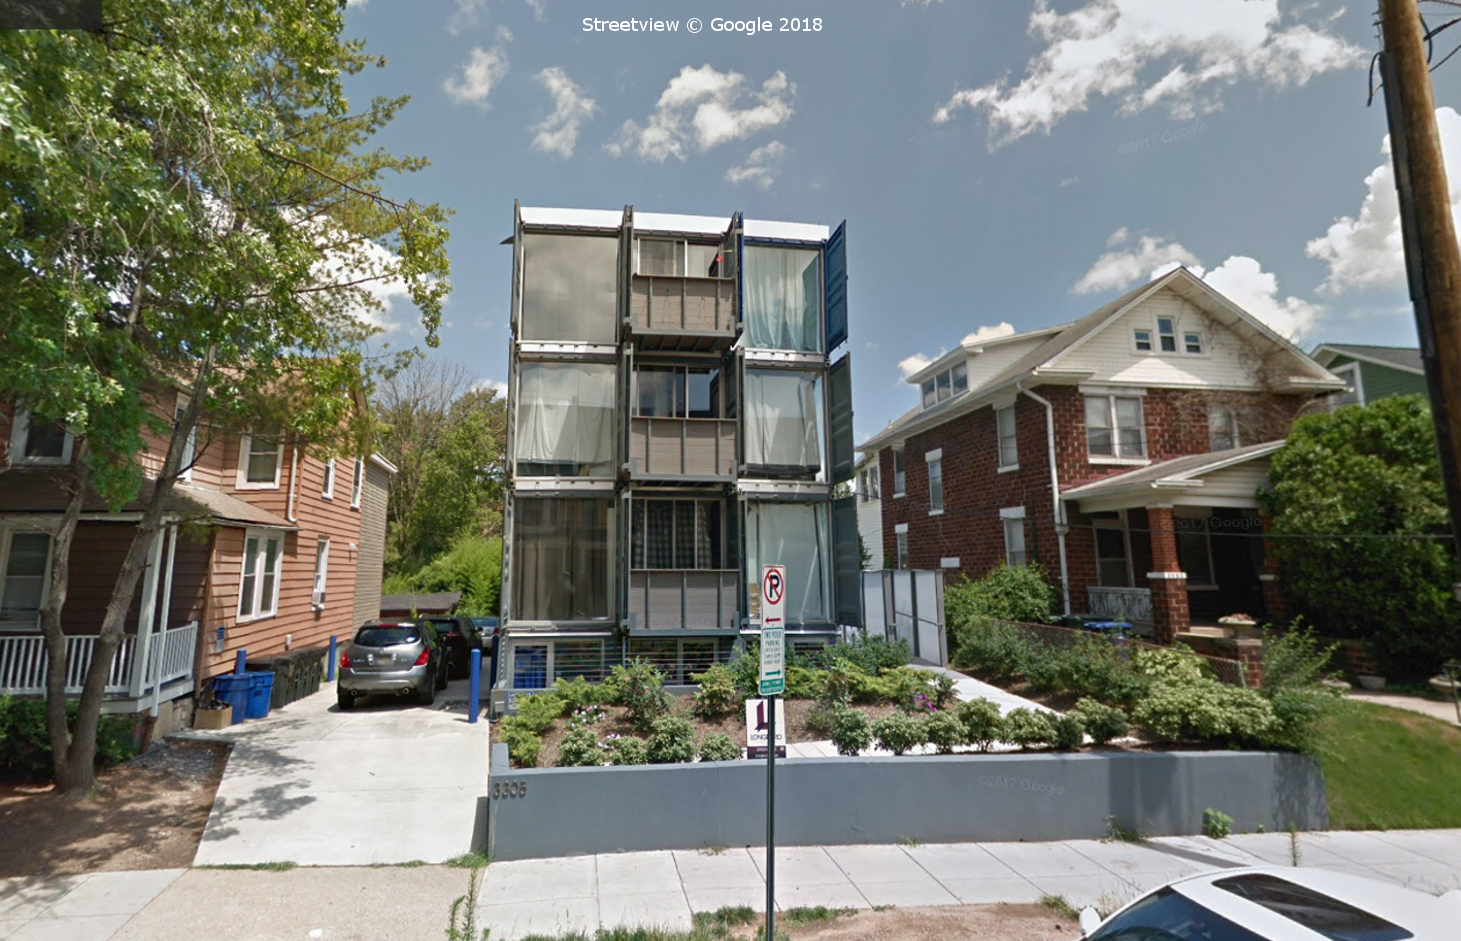 Sea Container Housing in DC, Washington, Google Streetview